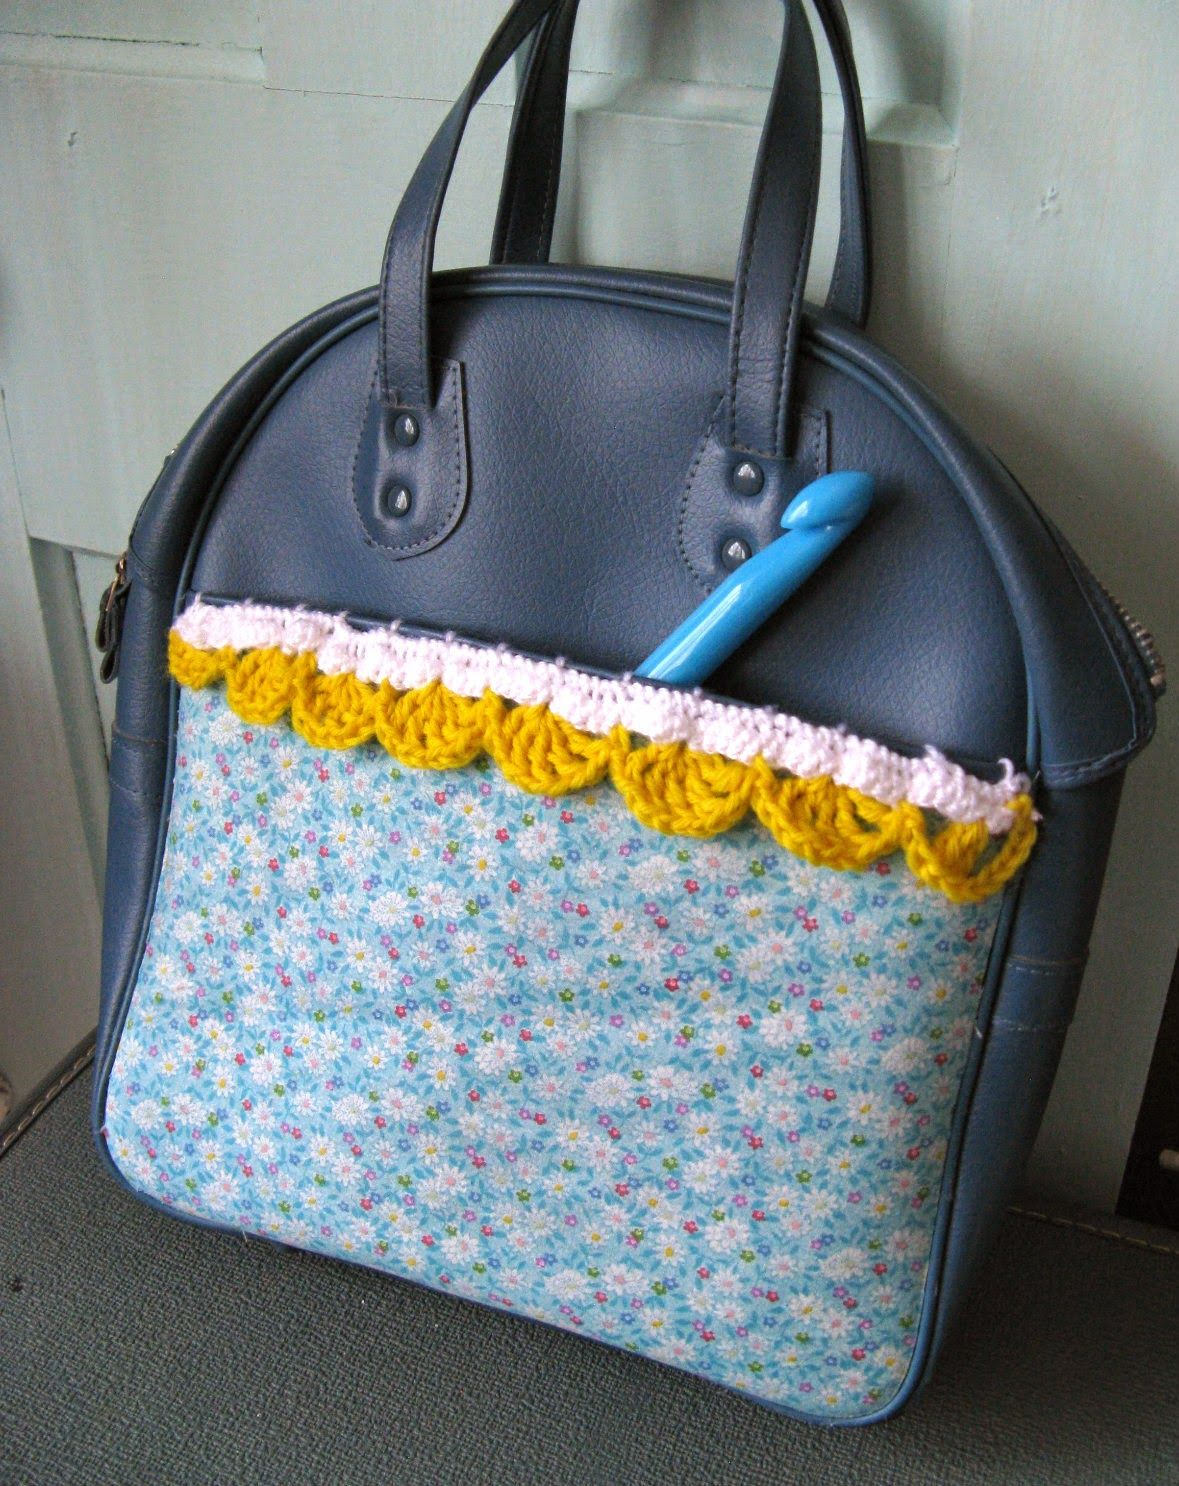 Happy as a Lark: Vintage Suitcase Turned into Crochet Bag